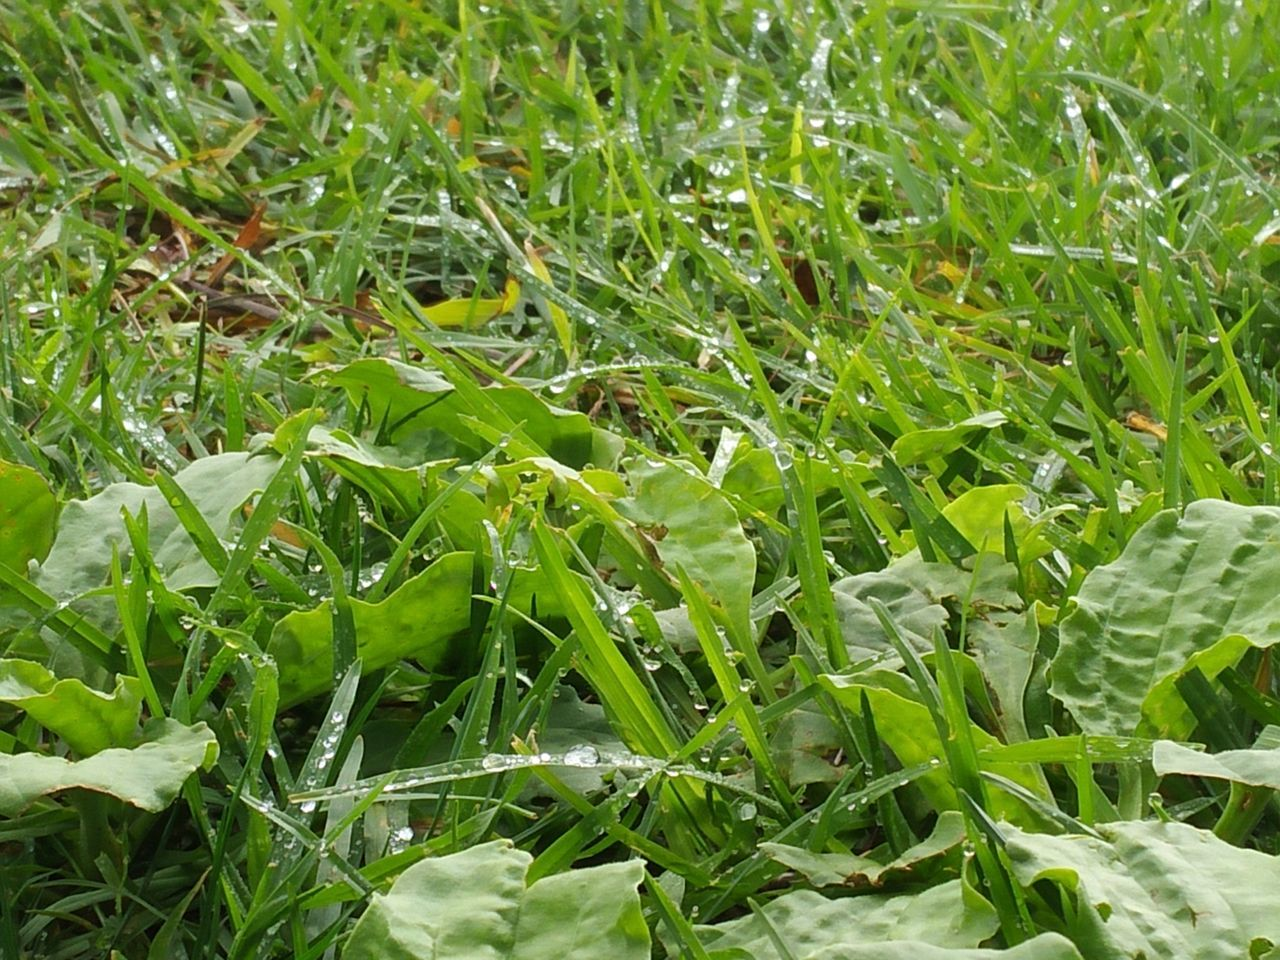 After rainy days mother nature shows her beauty. Nature Growth Grass Close-up Water Drops Mother Nature Beauty Bright Green Grass Beauty In Nature Plant Field Backgrounds